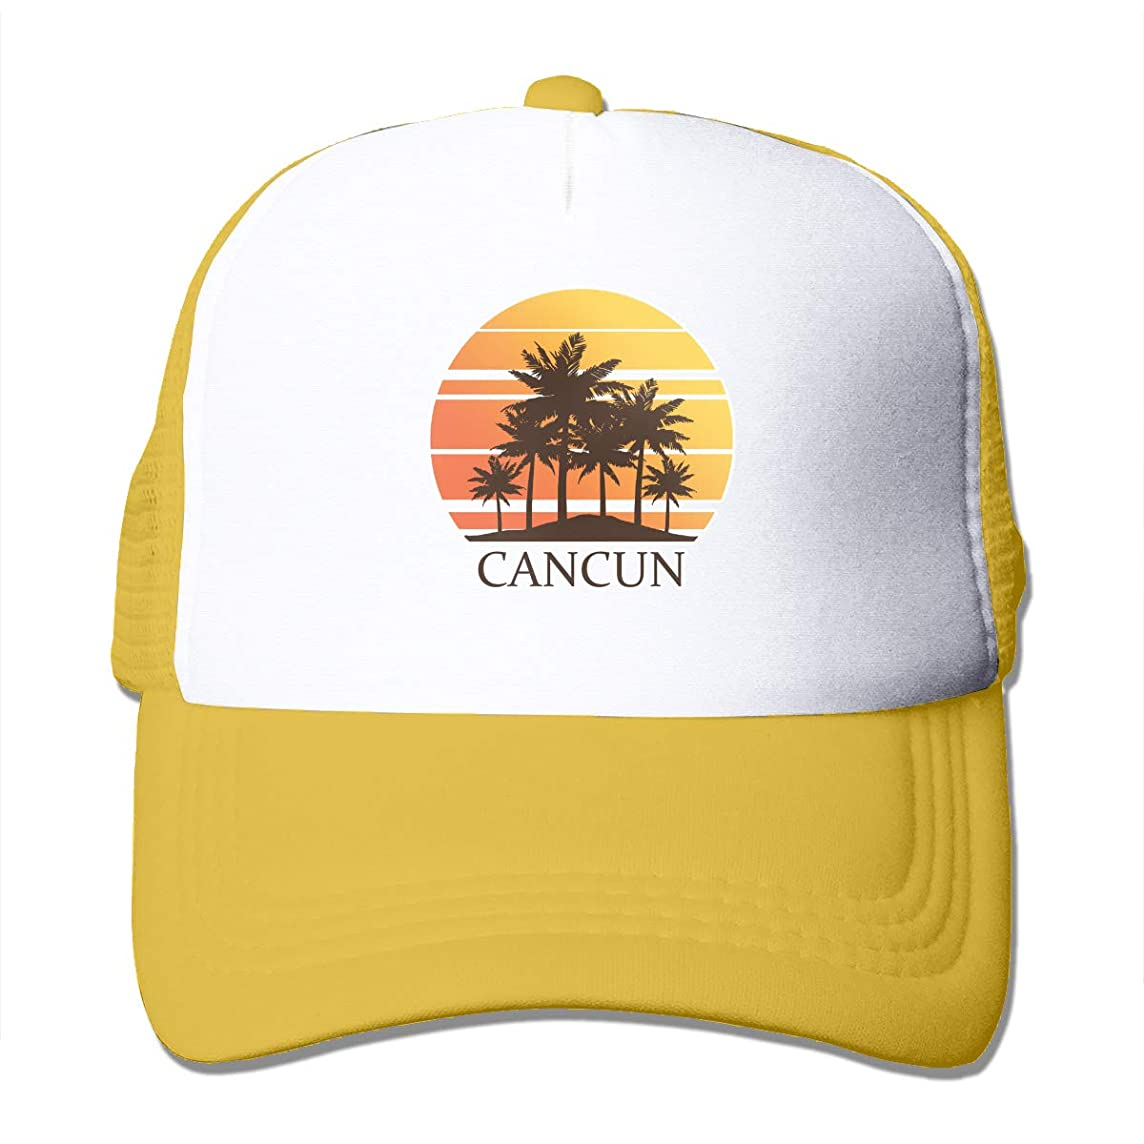 LETI LISW Cancun Mexico Sunset and Palm Trees Unisex Lovely Trucker Mesh Hats Adjustable Baseball Cap